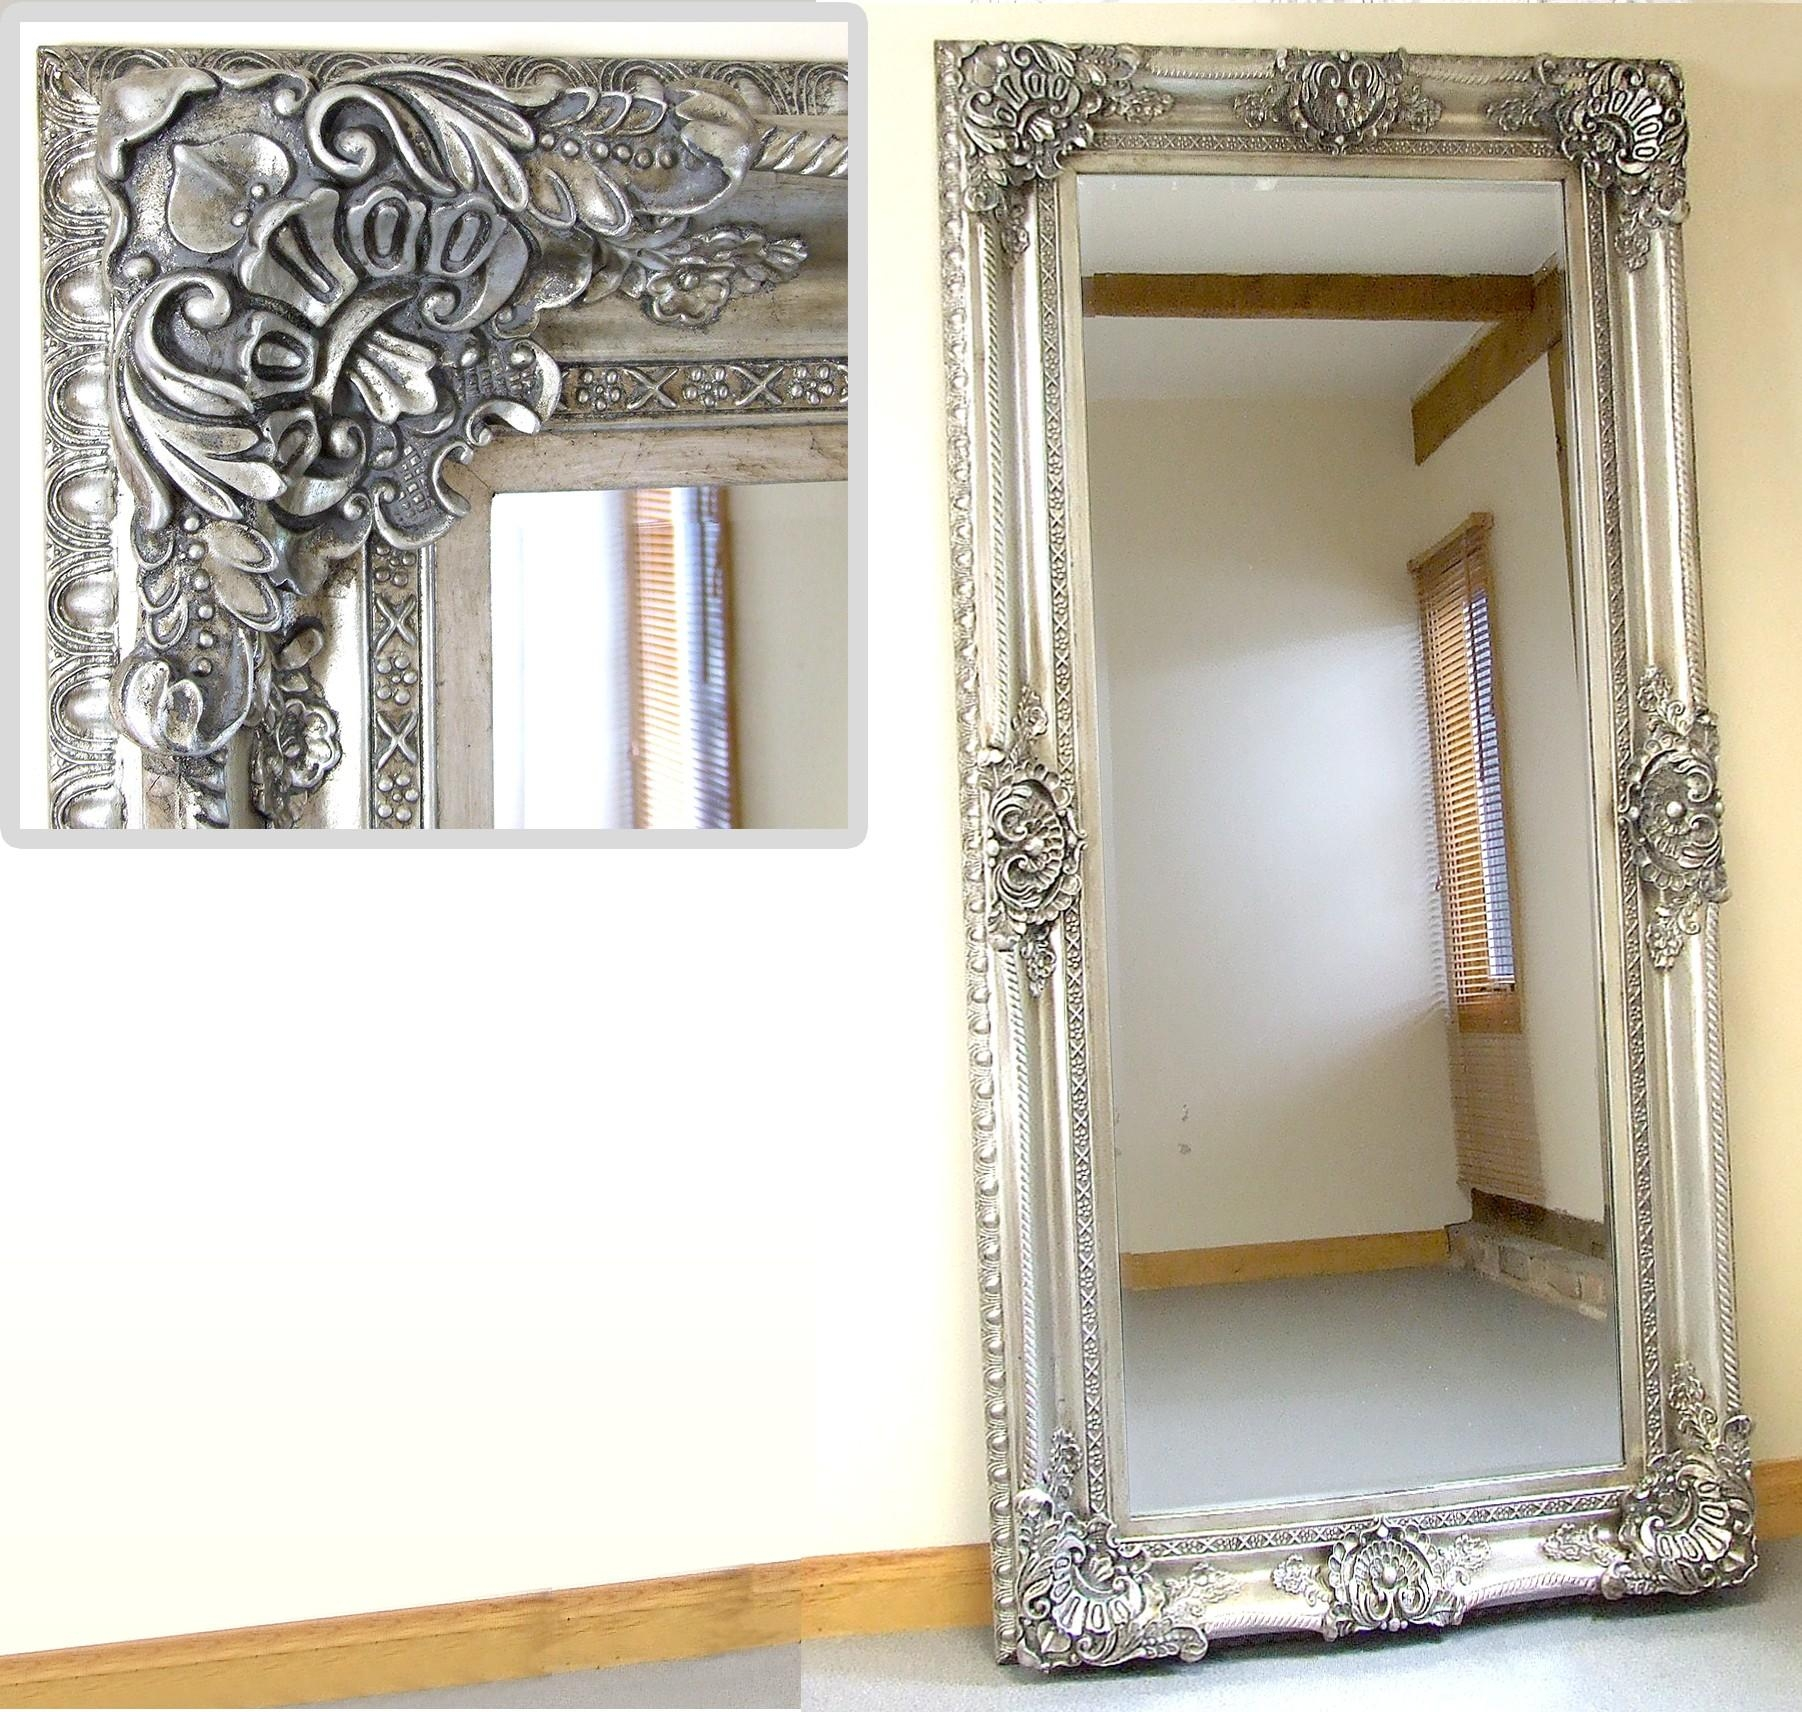 Full Length Silver Mirror 40 Unique Decoration And Ornate Full With Regard To Silver Ornate Wall Mirror (Image 7 of 20)